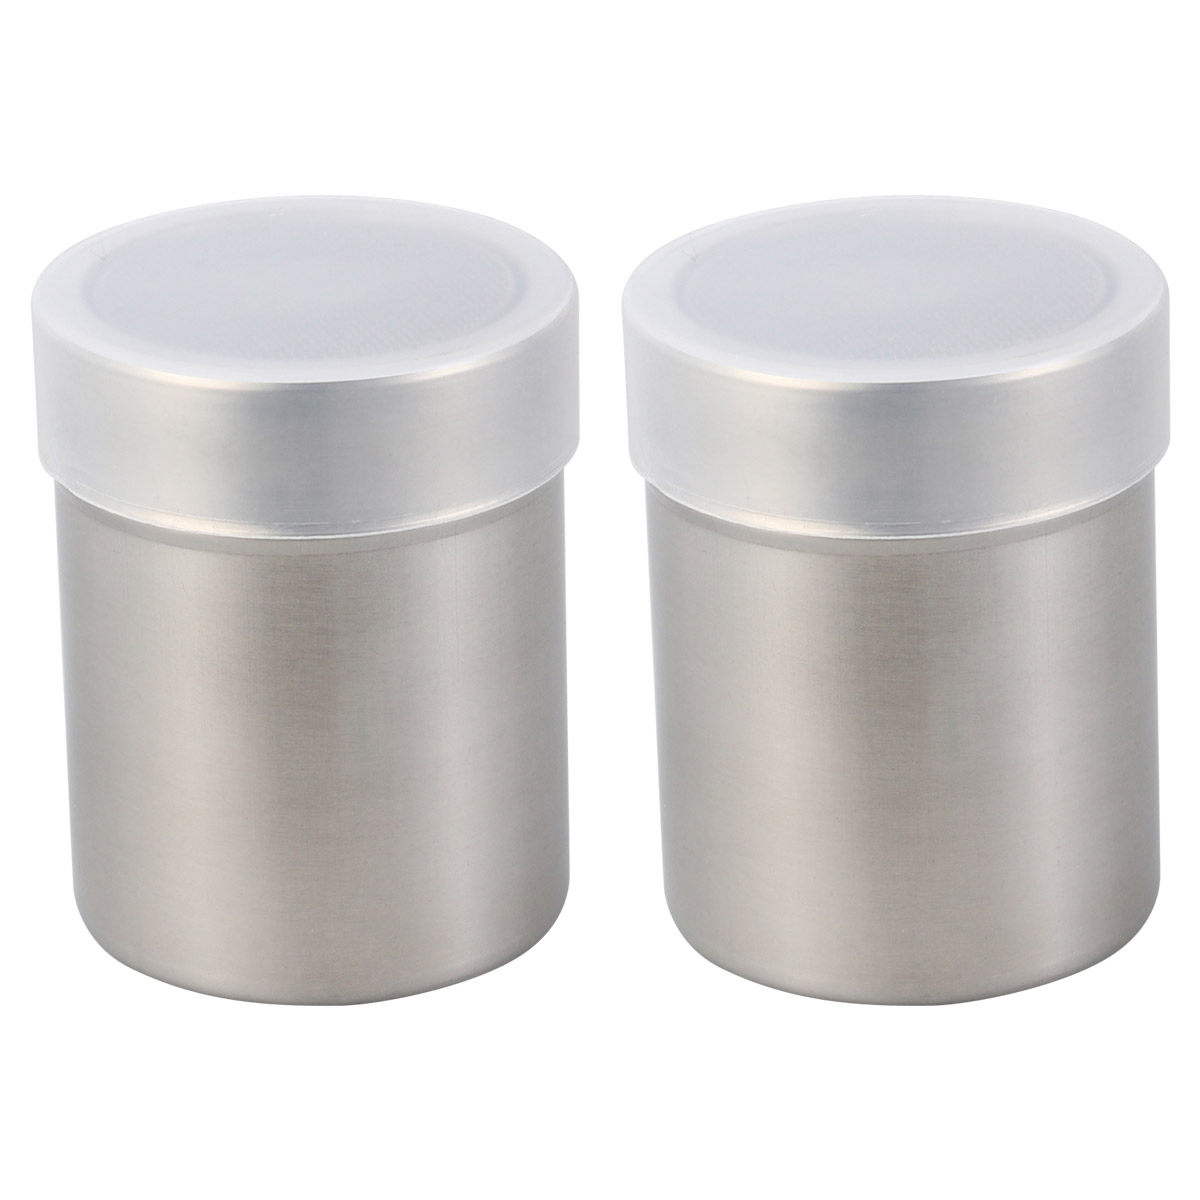 6X Seasoning Salt Box Spice Jar Kitchen Condiment Container for BBQ Camping